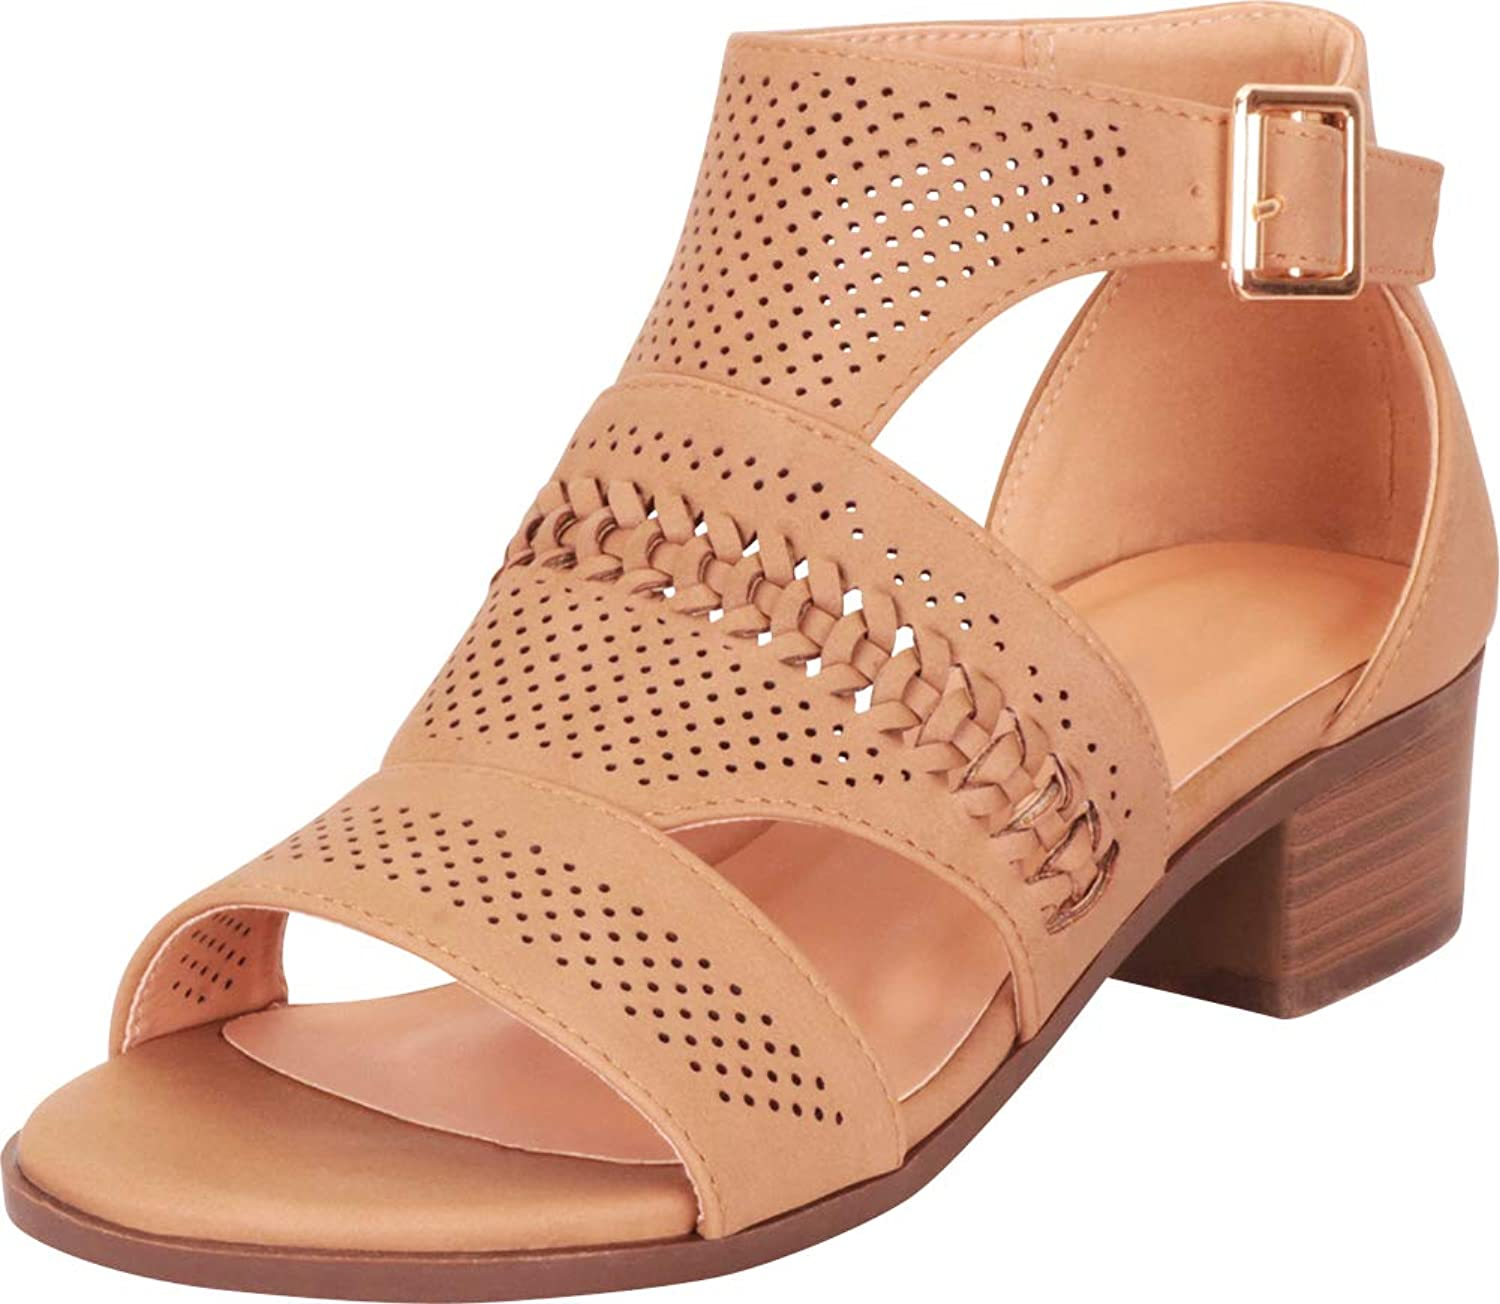 Cambridge Select Women's Open Toe Cutout Perforated Whipstitch Chunky Block Heel Ankle Bootie